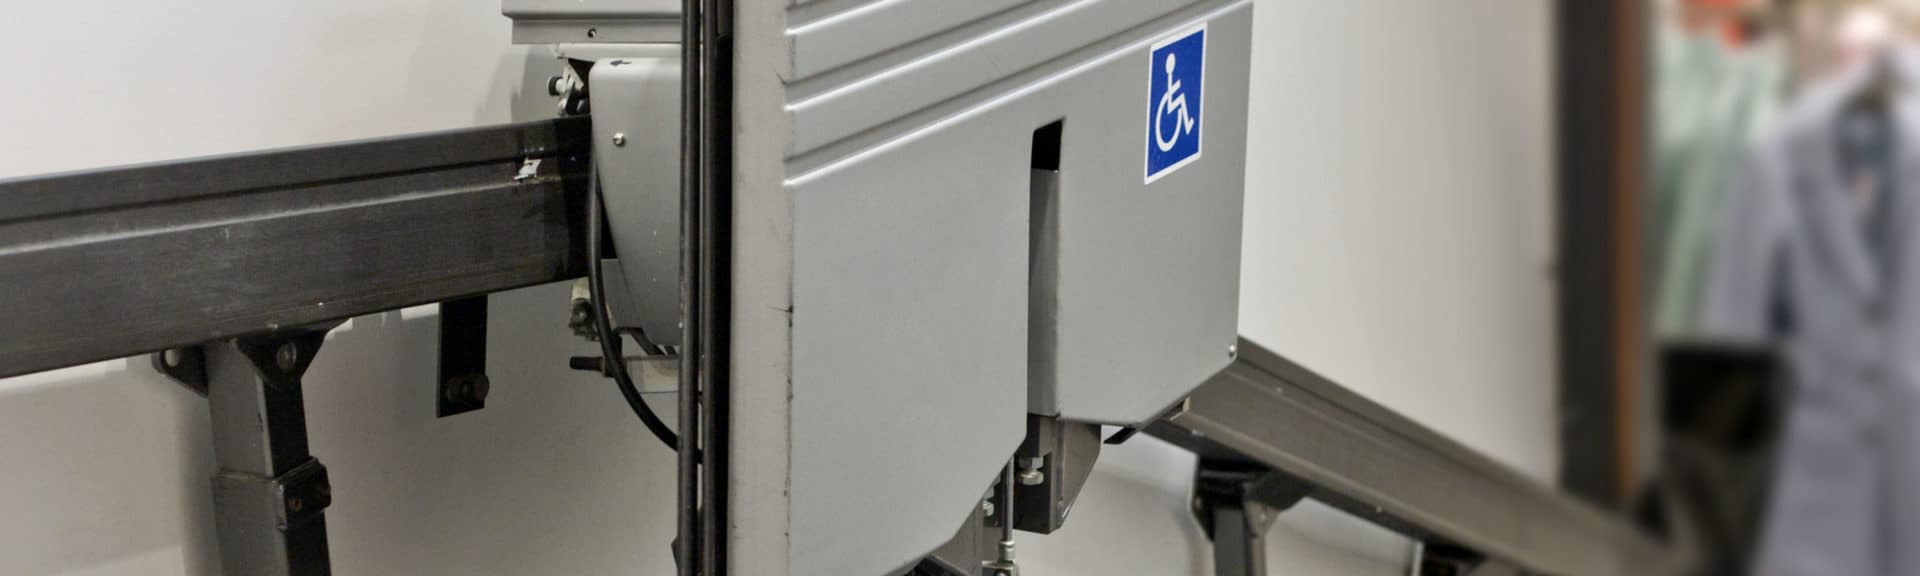 Disabled Logo on Stair Lift